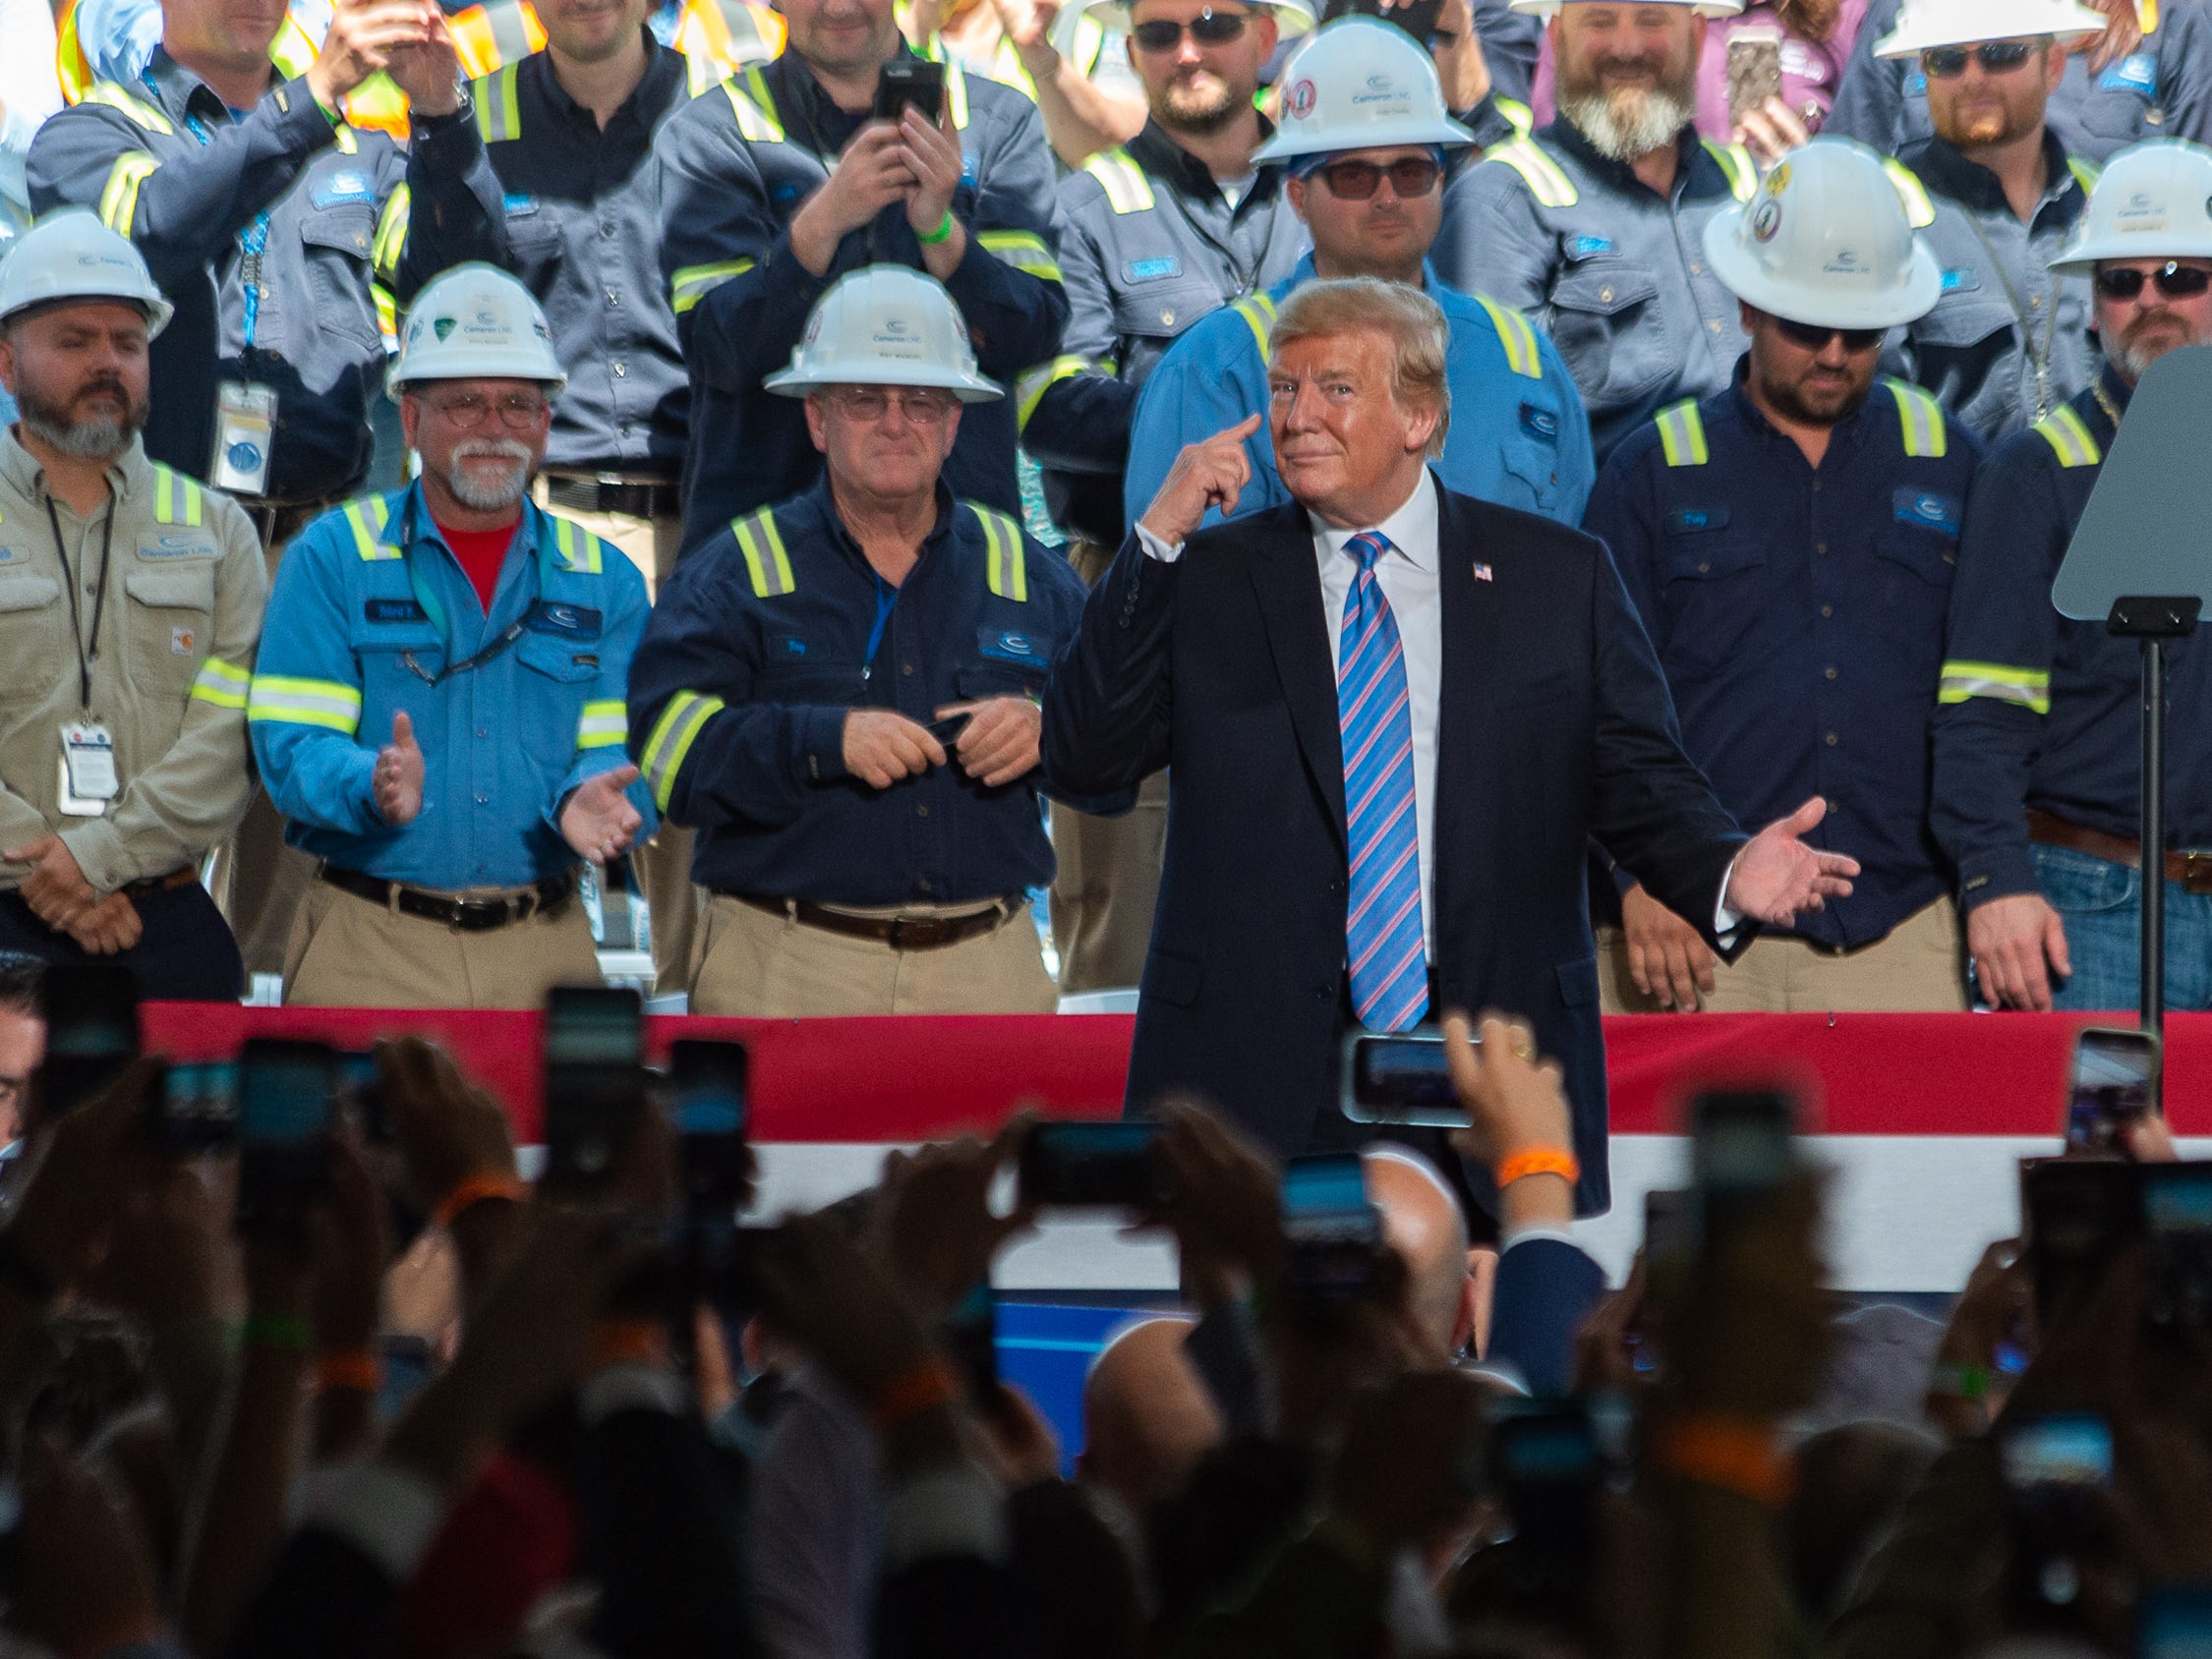 President Donald Trump speaking at Cameron LNG Export Terminal in Hackberry, LA. Tuesday, May 14, 2019.